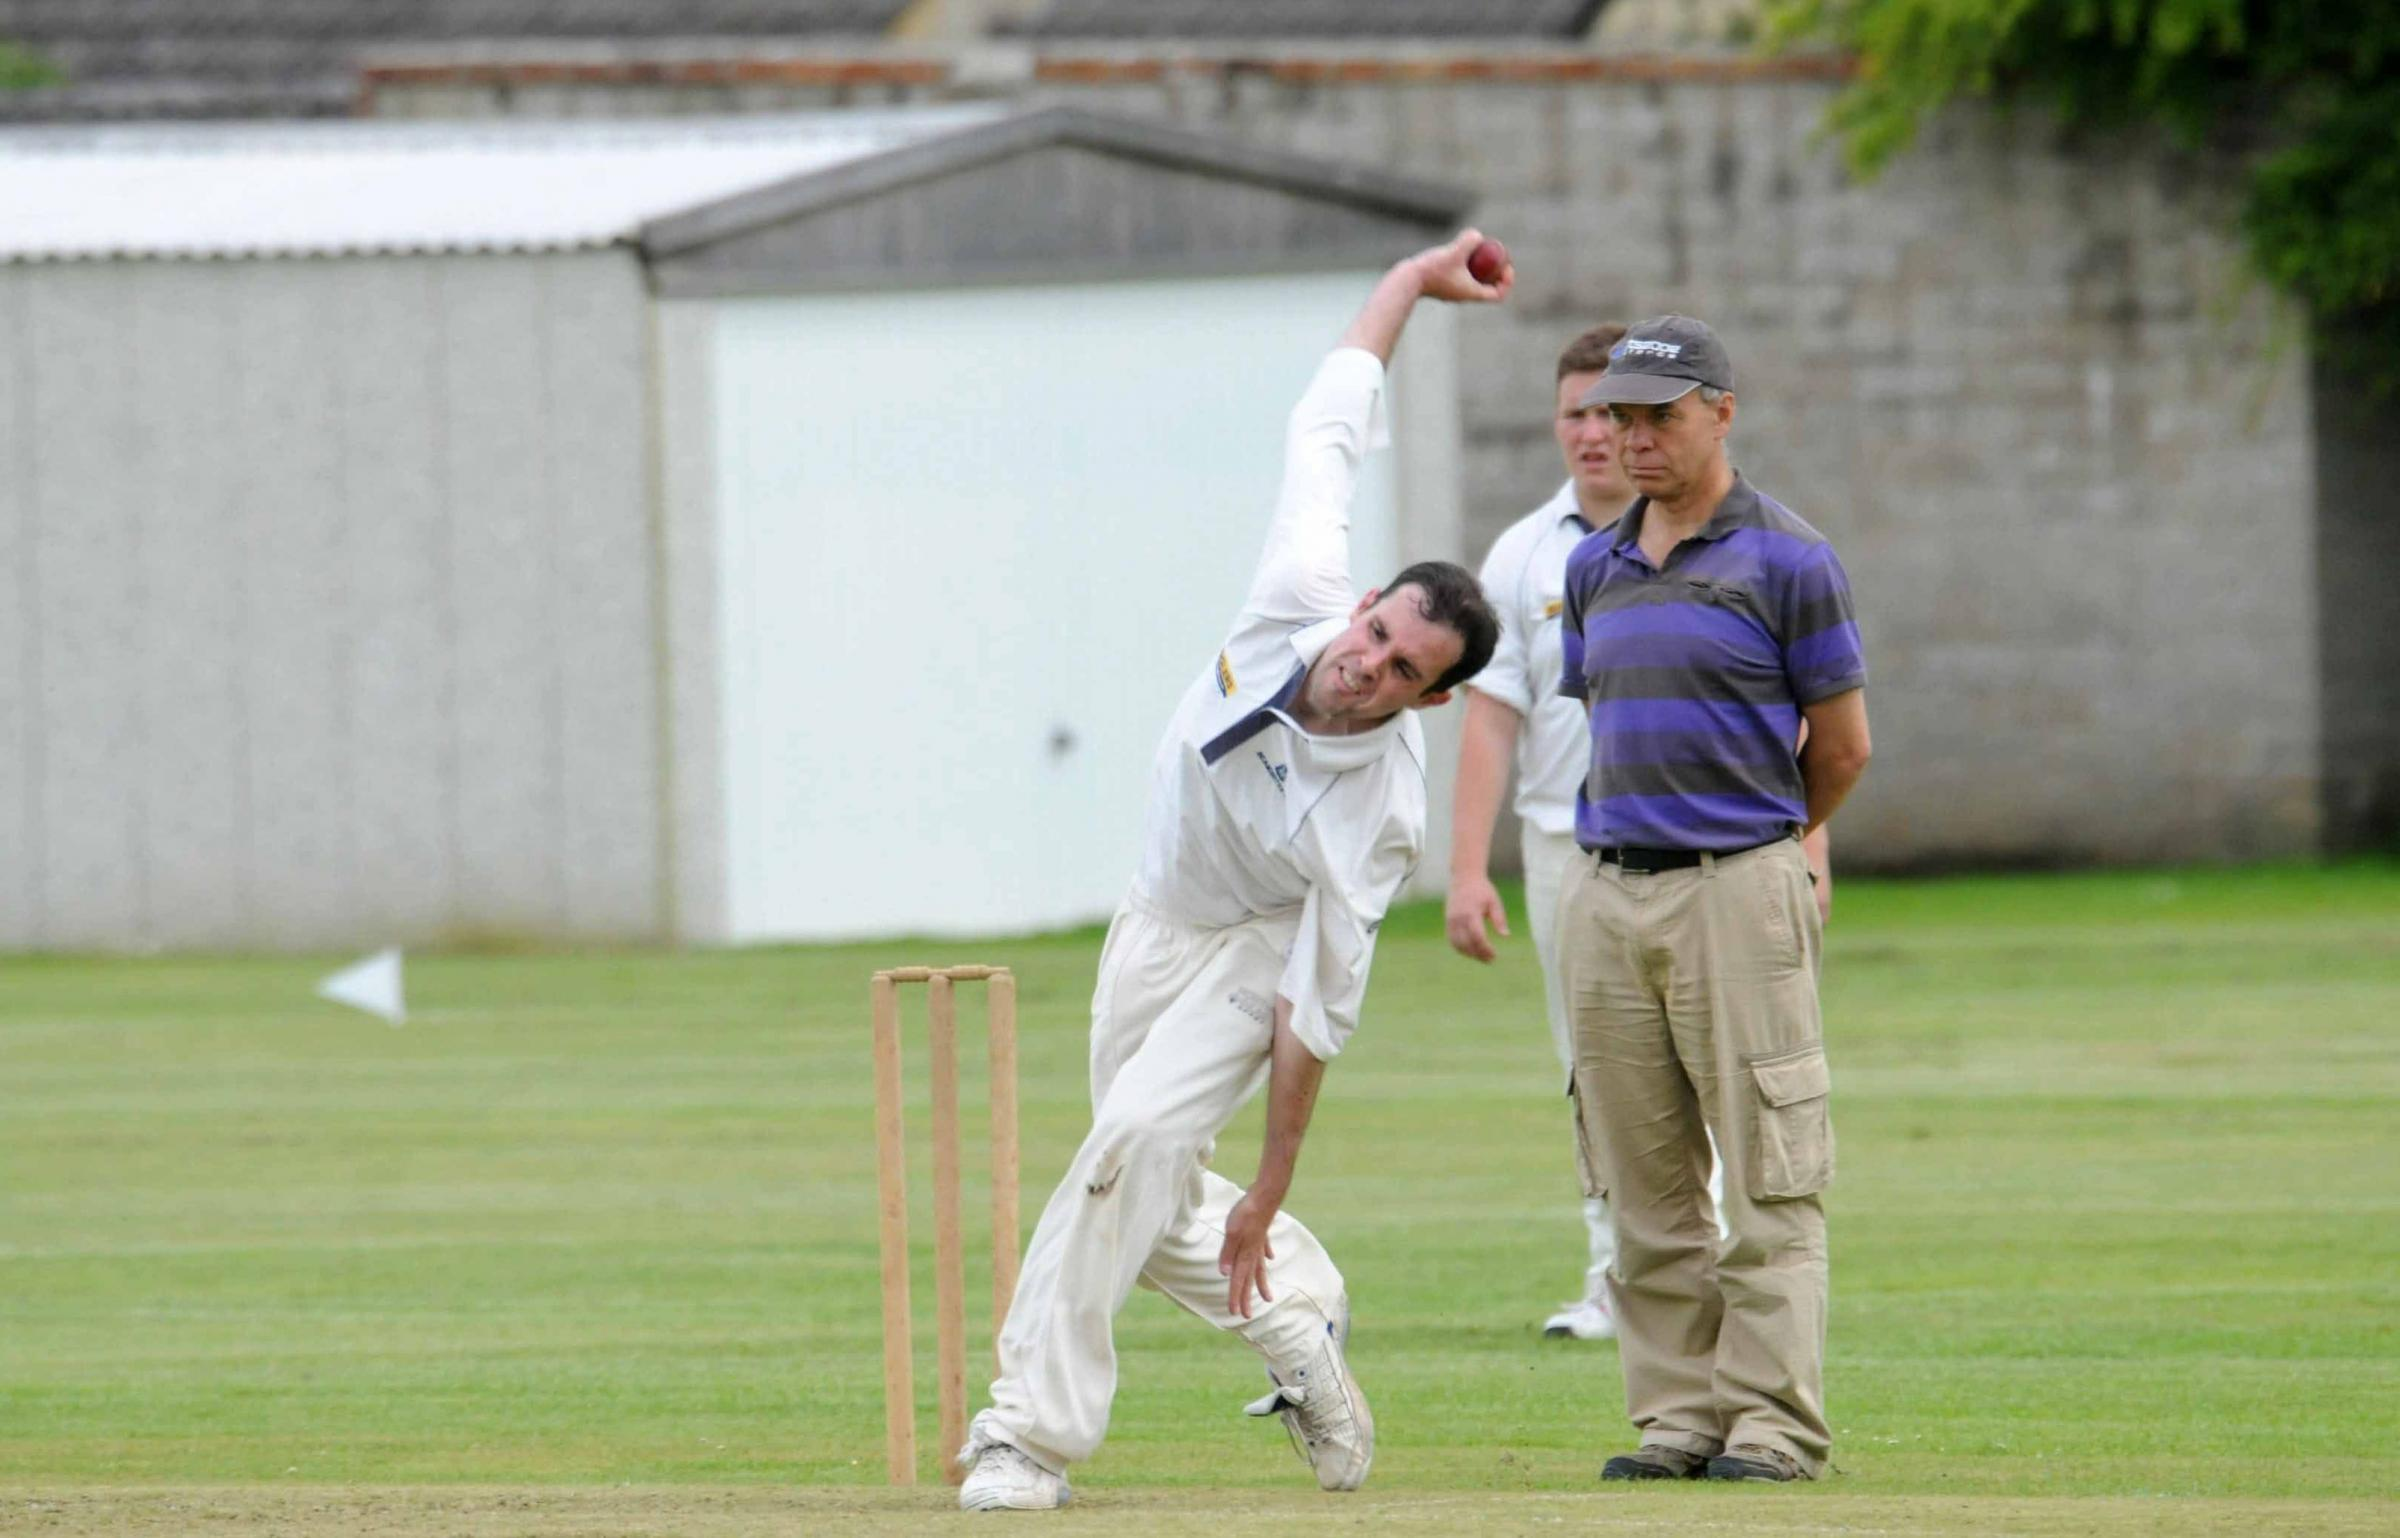 5IN THE WICKETS: Simon Jones took 3-22 			                 Picture: GRAHAM HUNT/HG9739